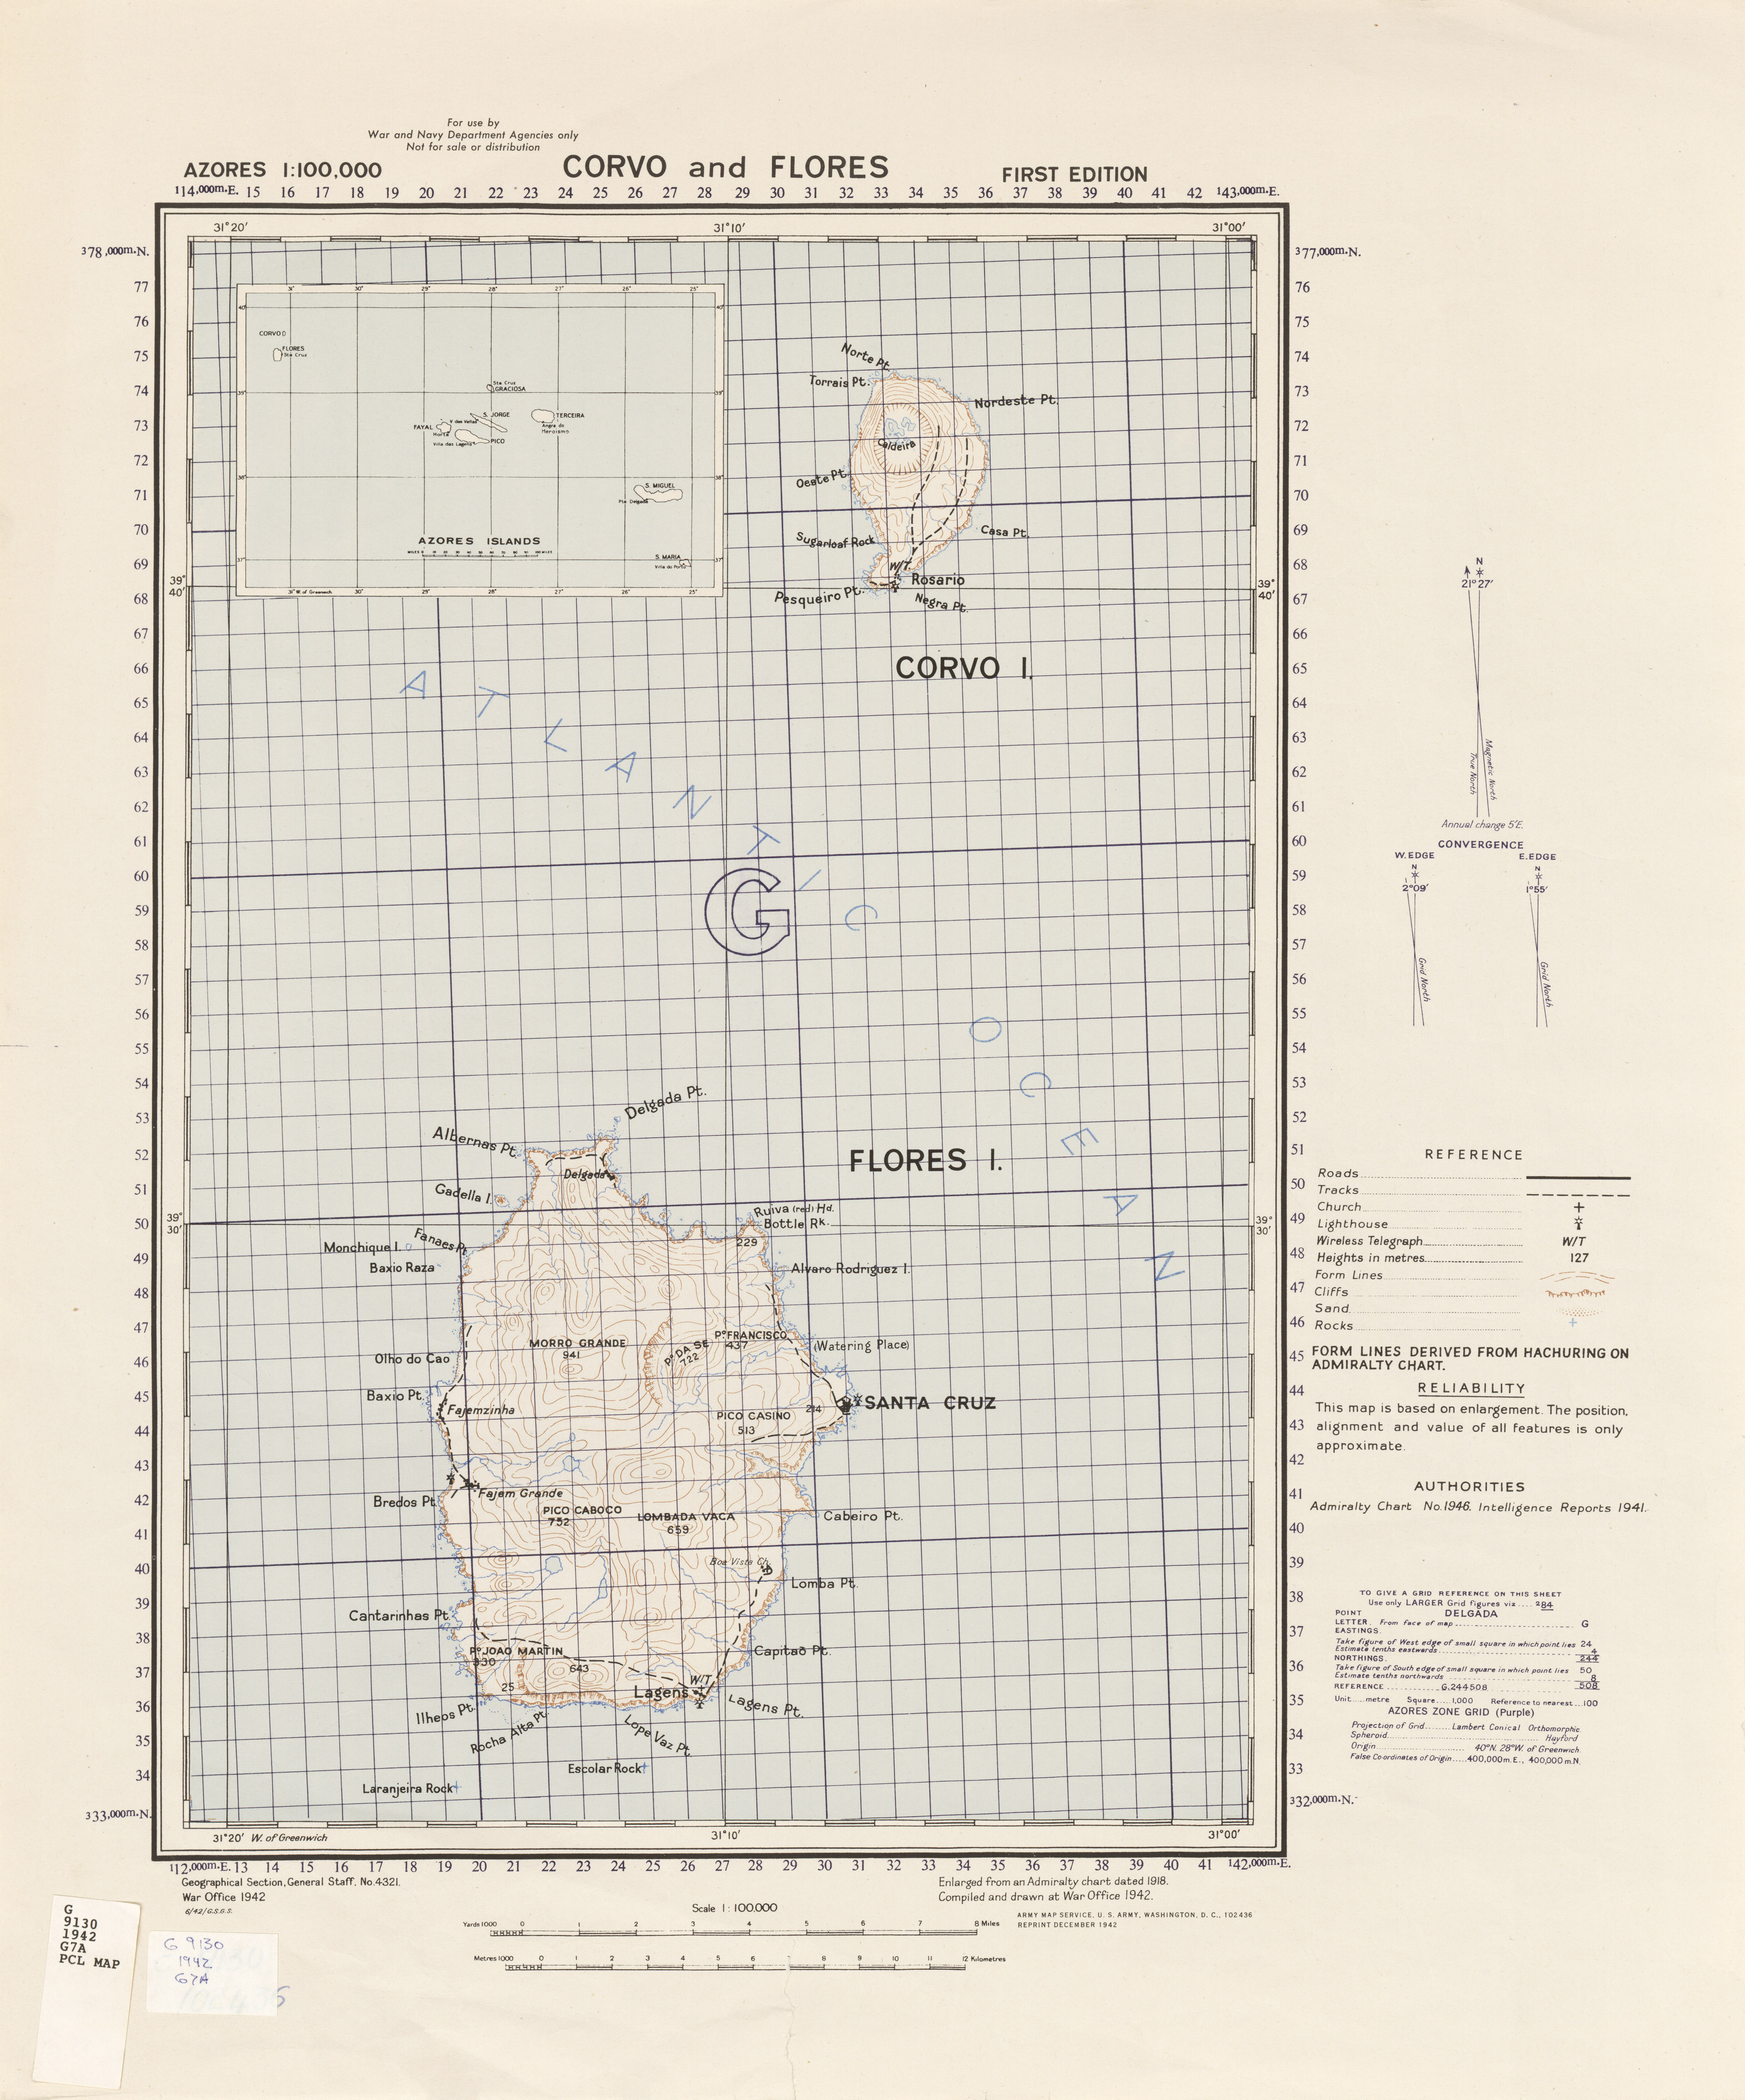 Azores Corvo And Flores Series 4321 1 100 000 U S Army Map Service